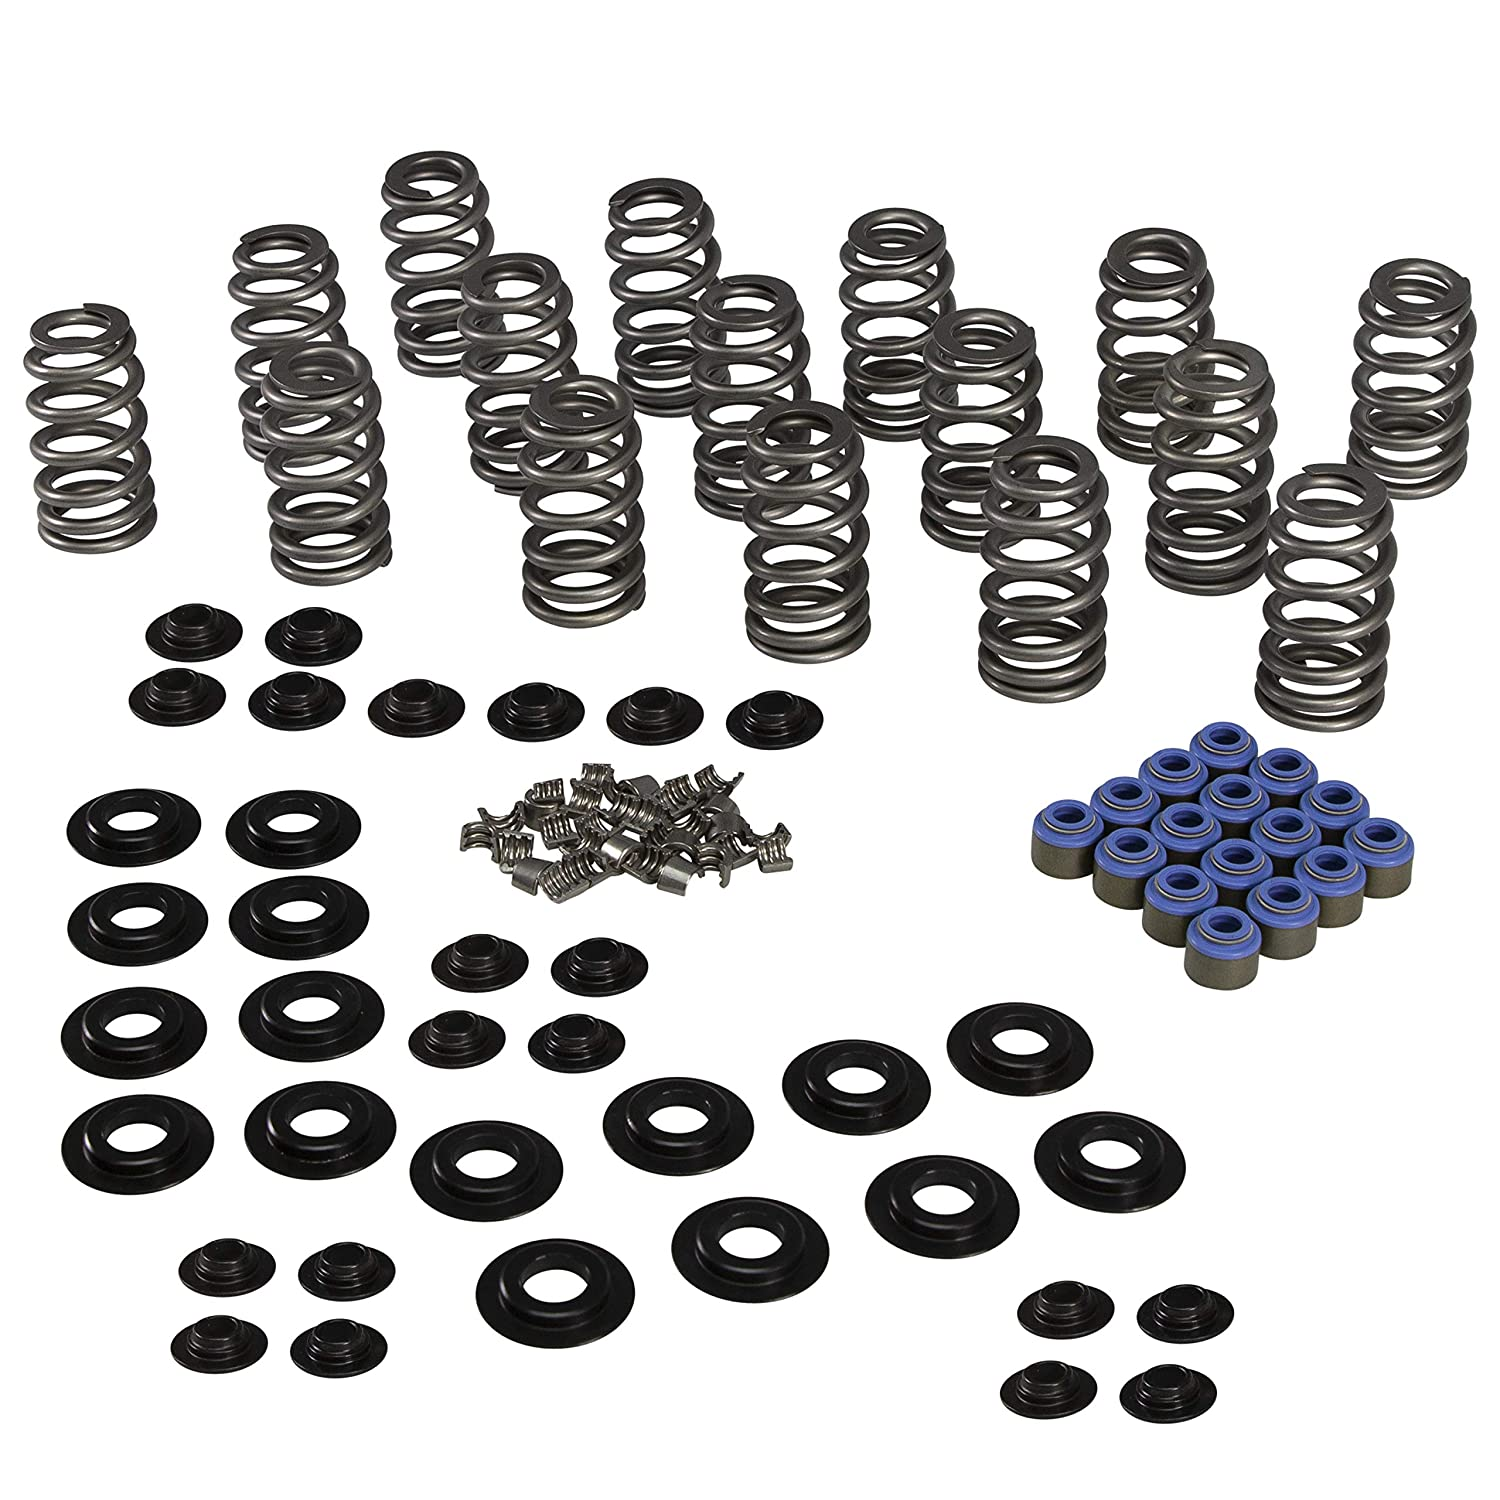 COMP Cams 26918CC-KIT 09-18 5.7//6.2//6.4L .600 Beehive Spring Kit w//Steel Retainers for 09-18 Dodge 5.7L//6.2//6.4 HEMI